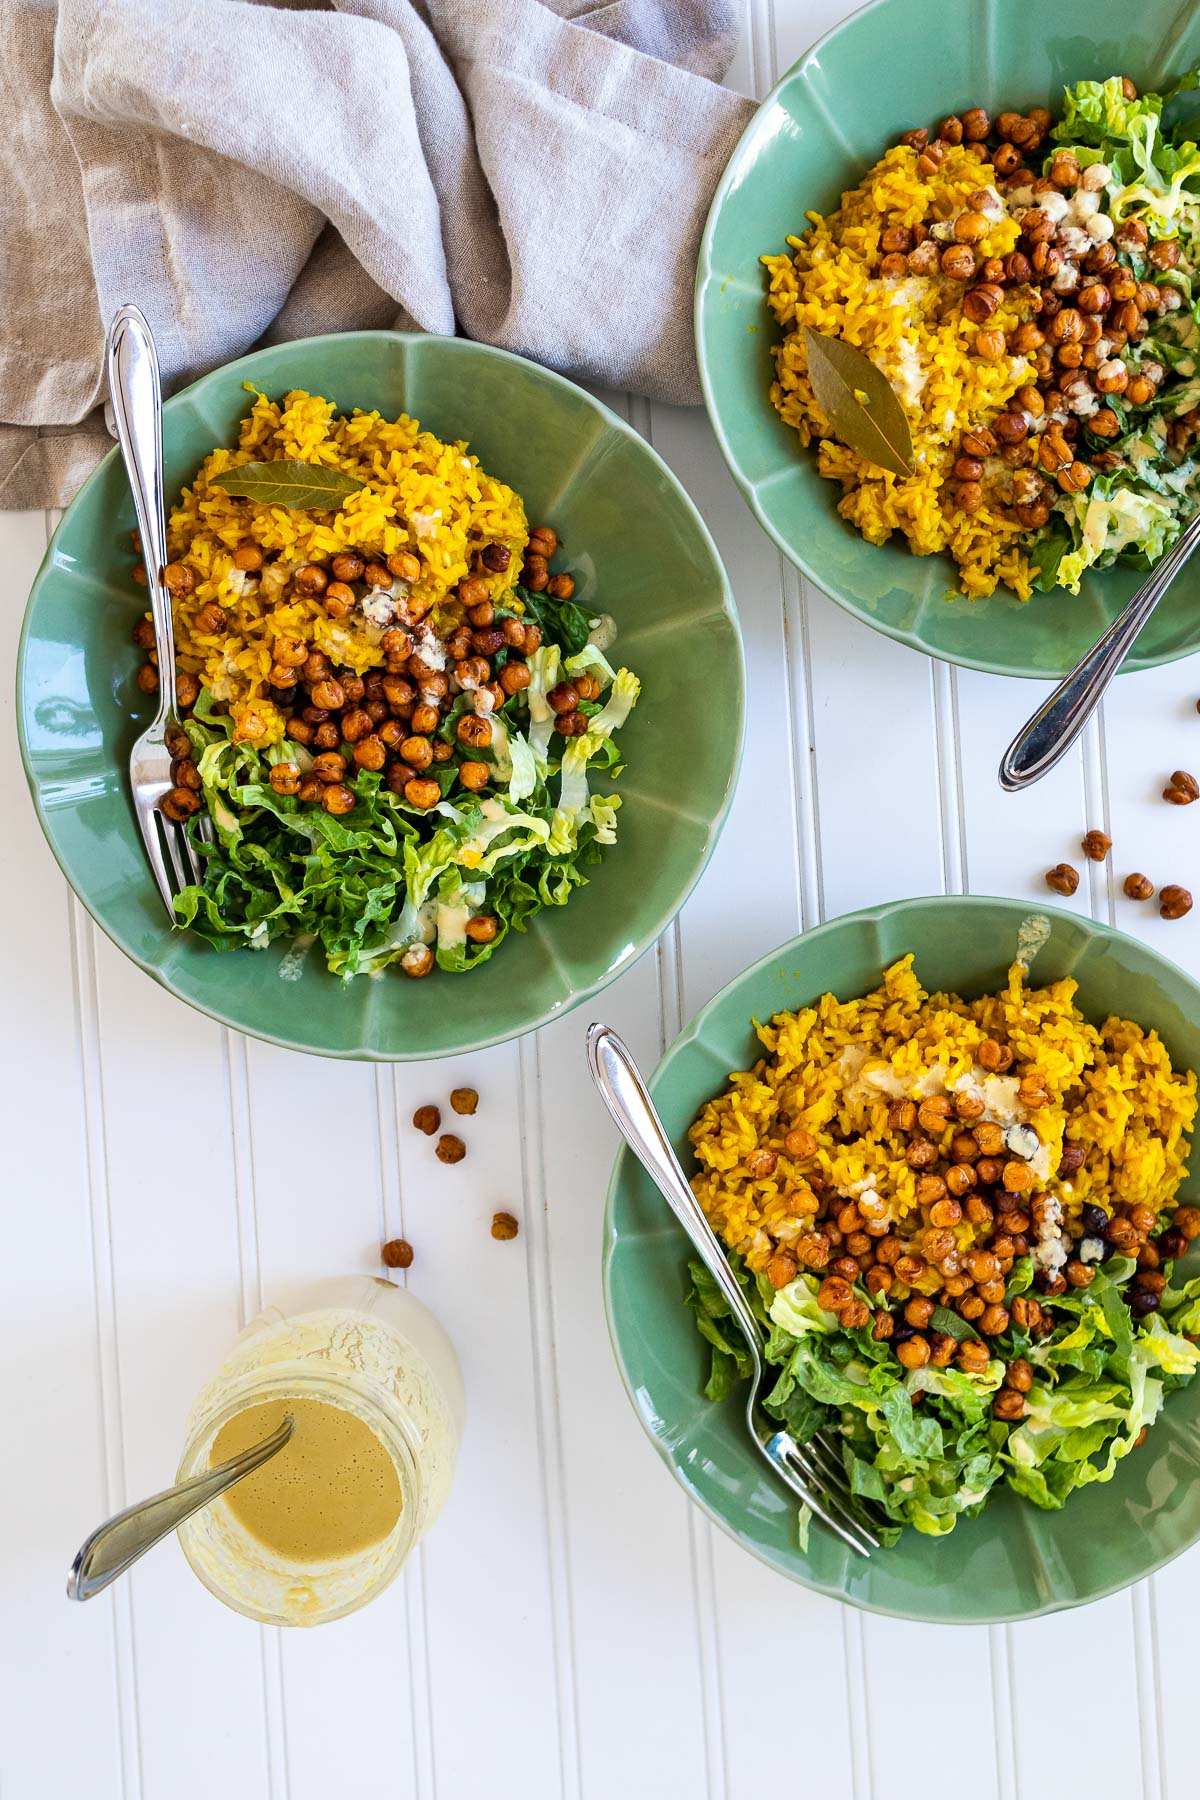 Bird view of three bowls of turmeric rice, lettuce, chickpeas and sauce.